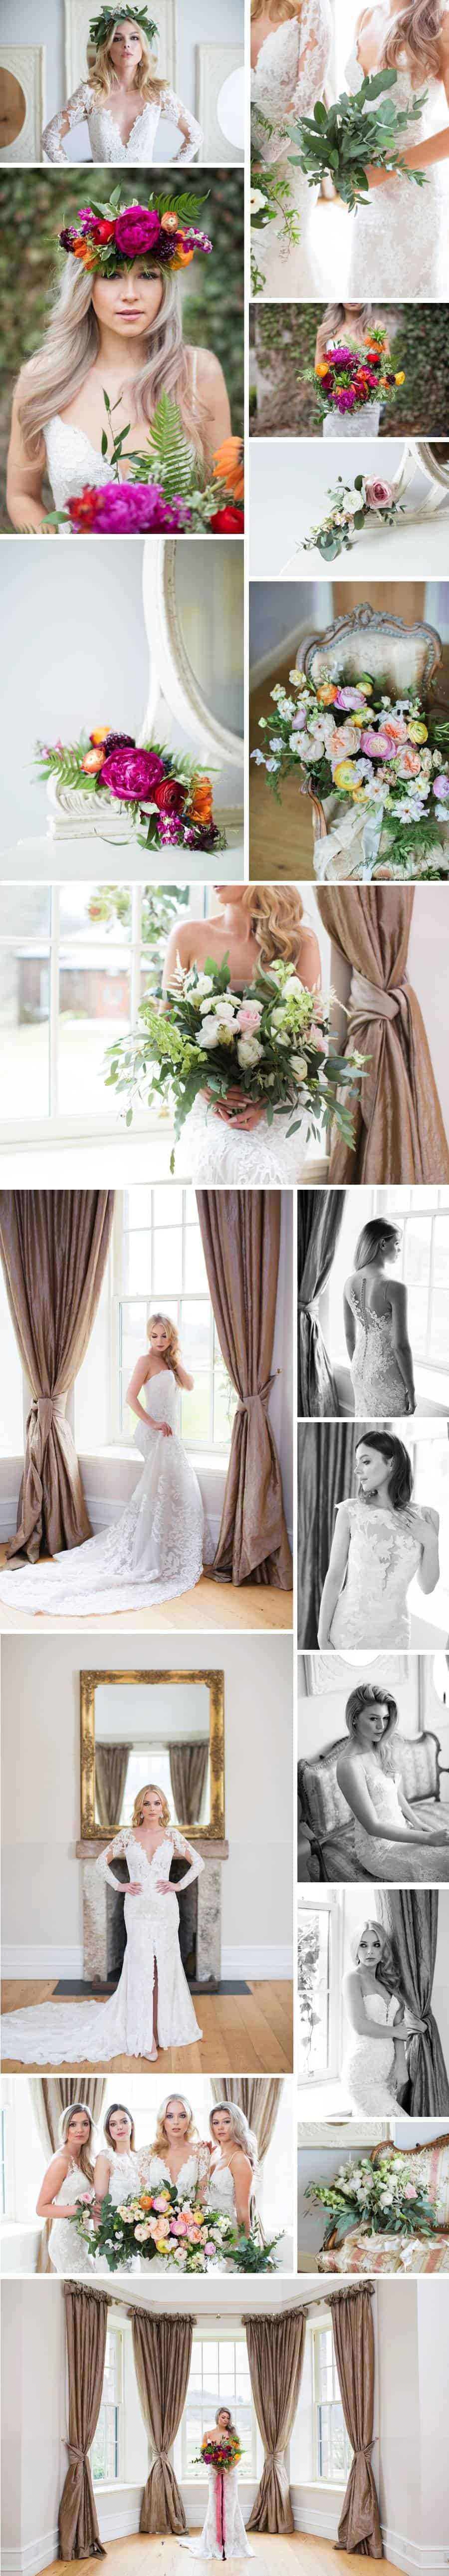 Spring Styled Shoot by Kimberly Logie